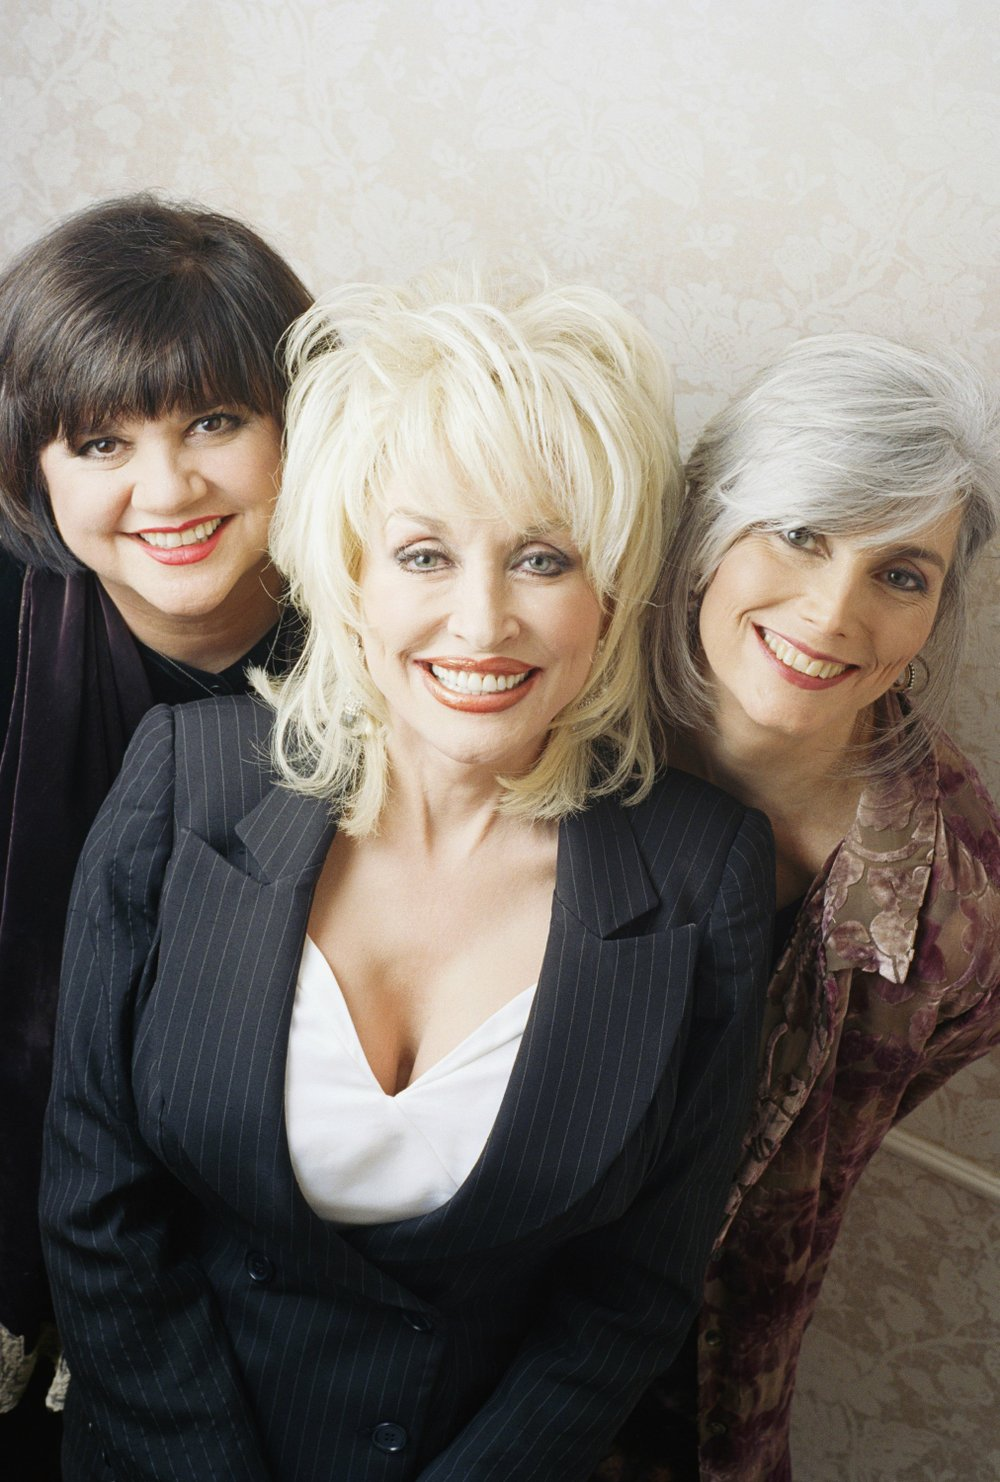 Singers Linda Ronstadt (from left) Dolly Parton and Emmylou Harris pose in New York, Feb. 11, 1999. Together, they were the supergroup Trio, and this photo was taken at the release of their second album together, Trio II. (AP Photo/Jim Cooper)